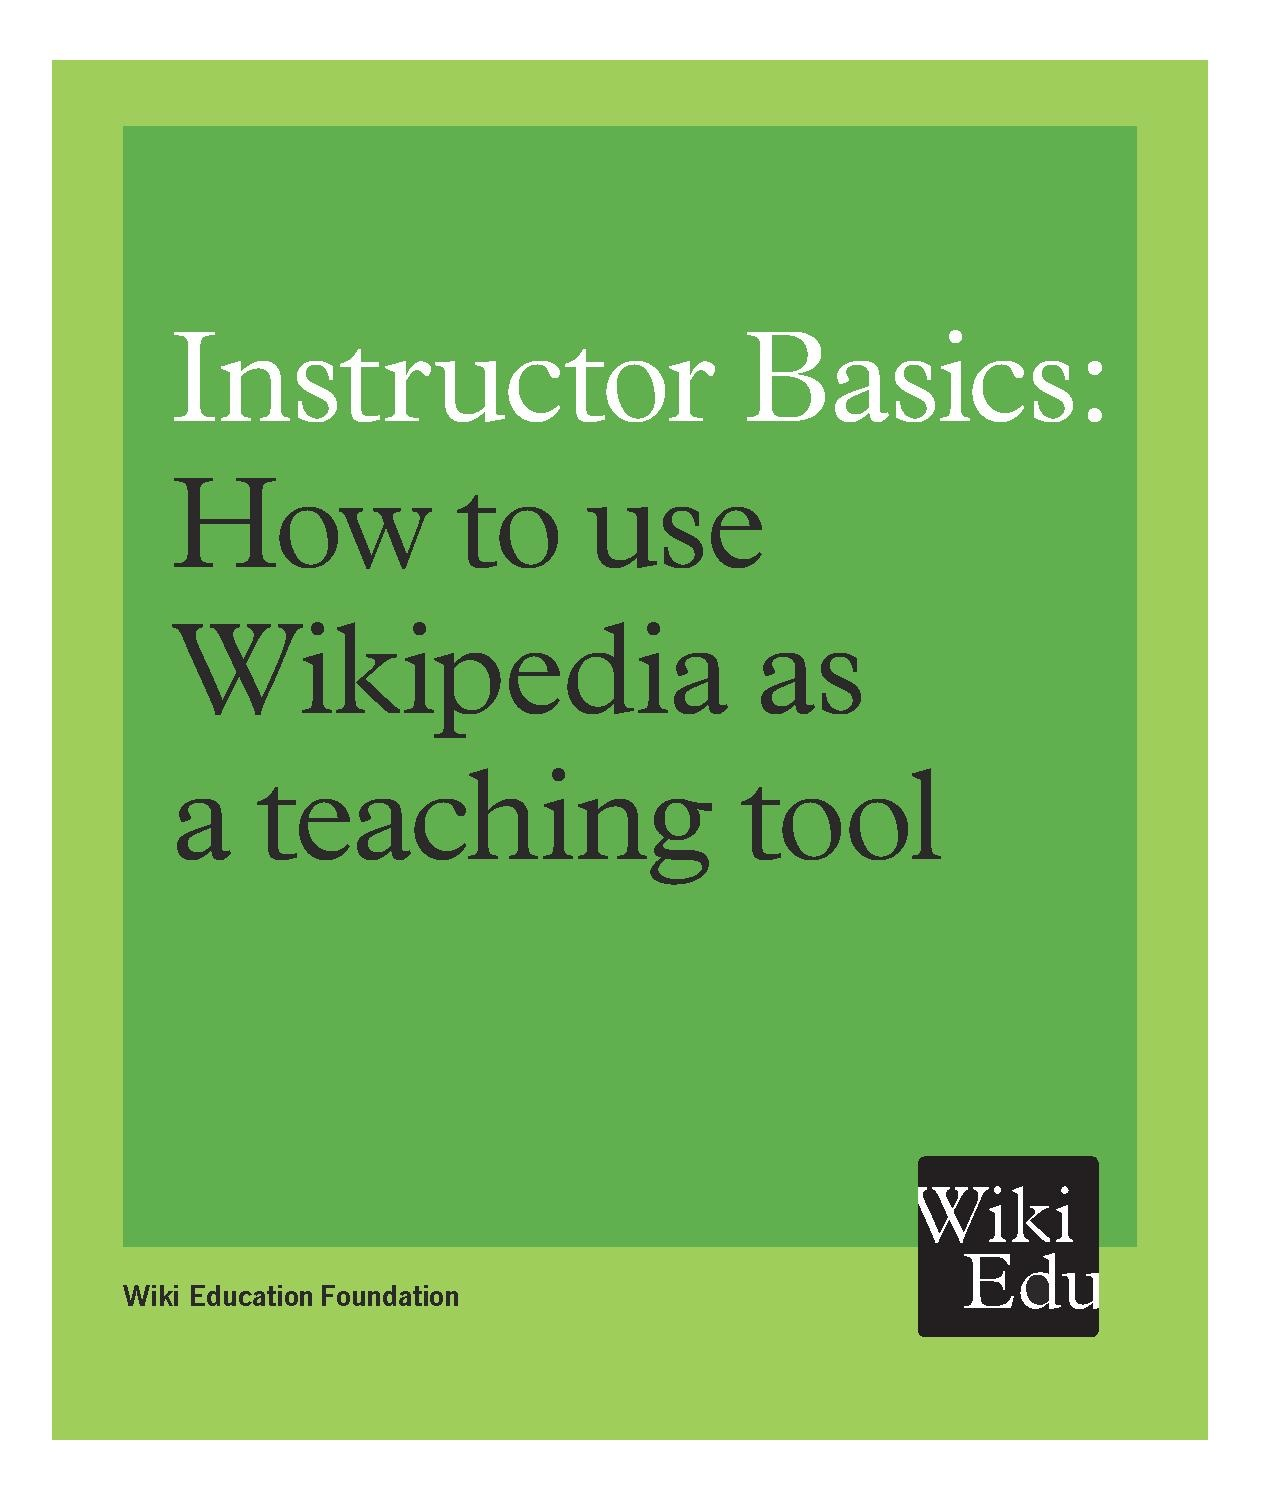 File:Instructor Basics, How to use Wikipedia as a teaching tool (Wiki Education Foundation).pdf